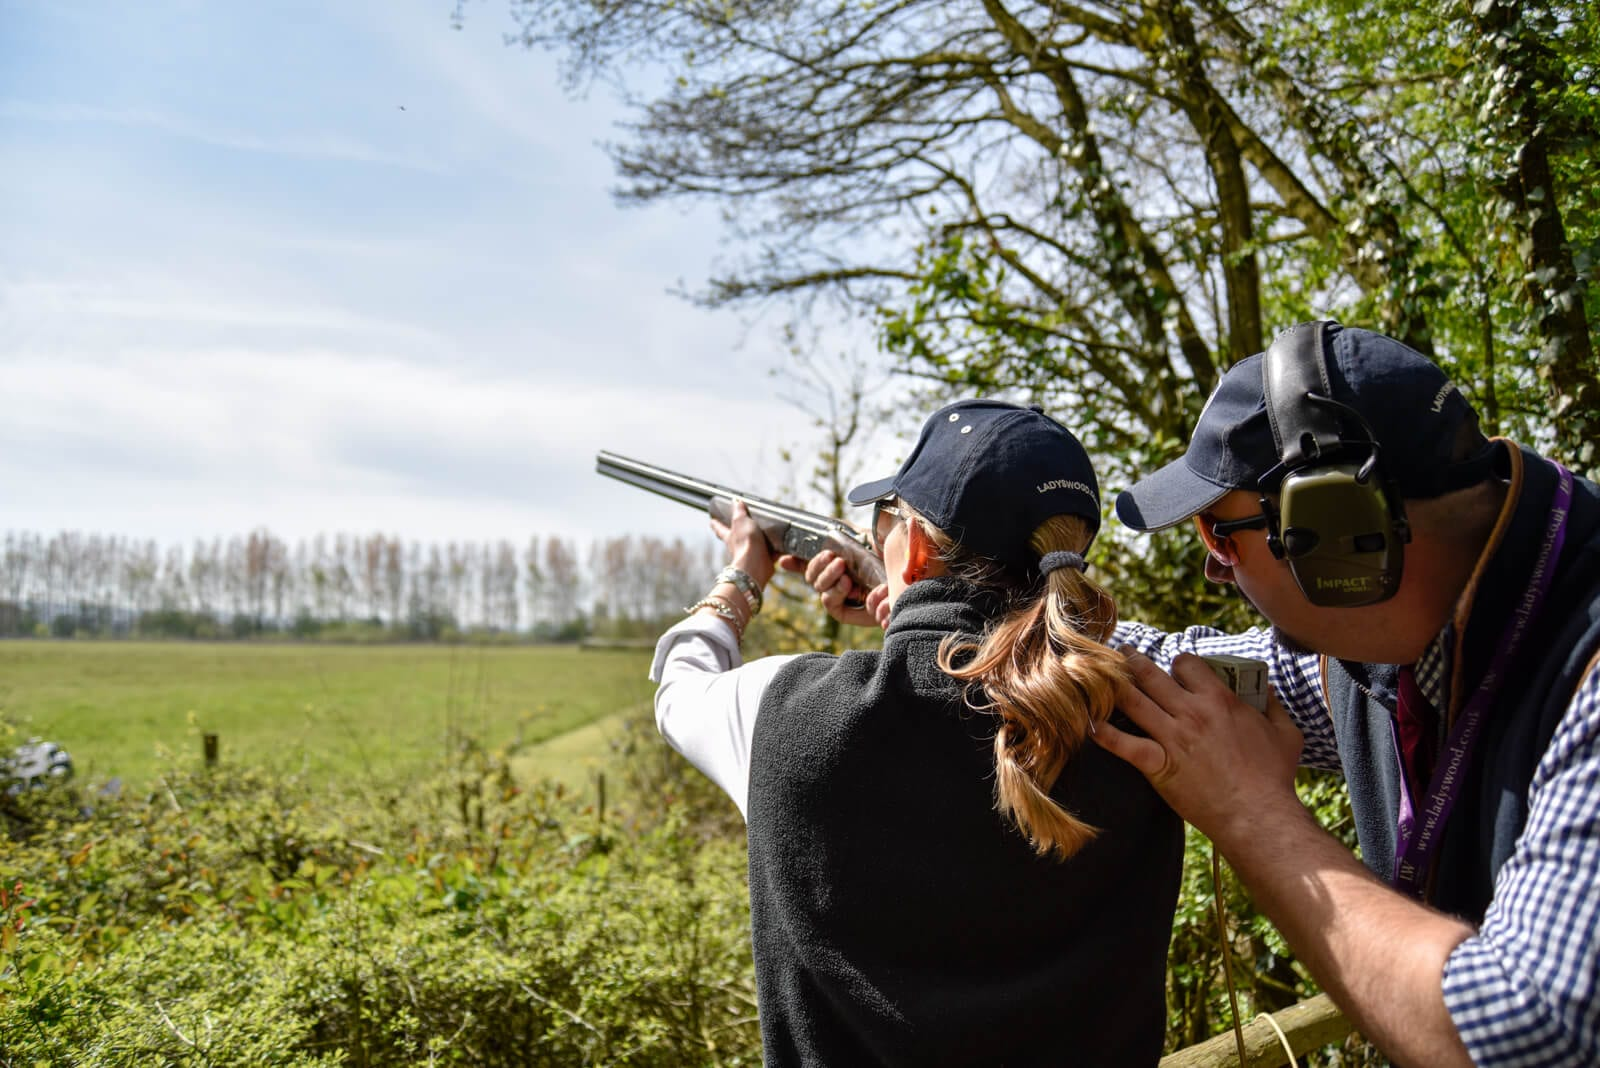 Clay pigeon shooting instruction at Lady's Wood Shooting School